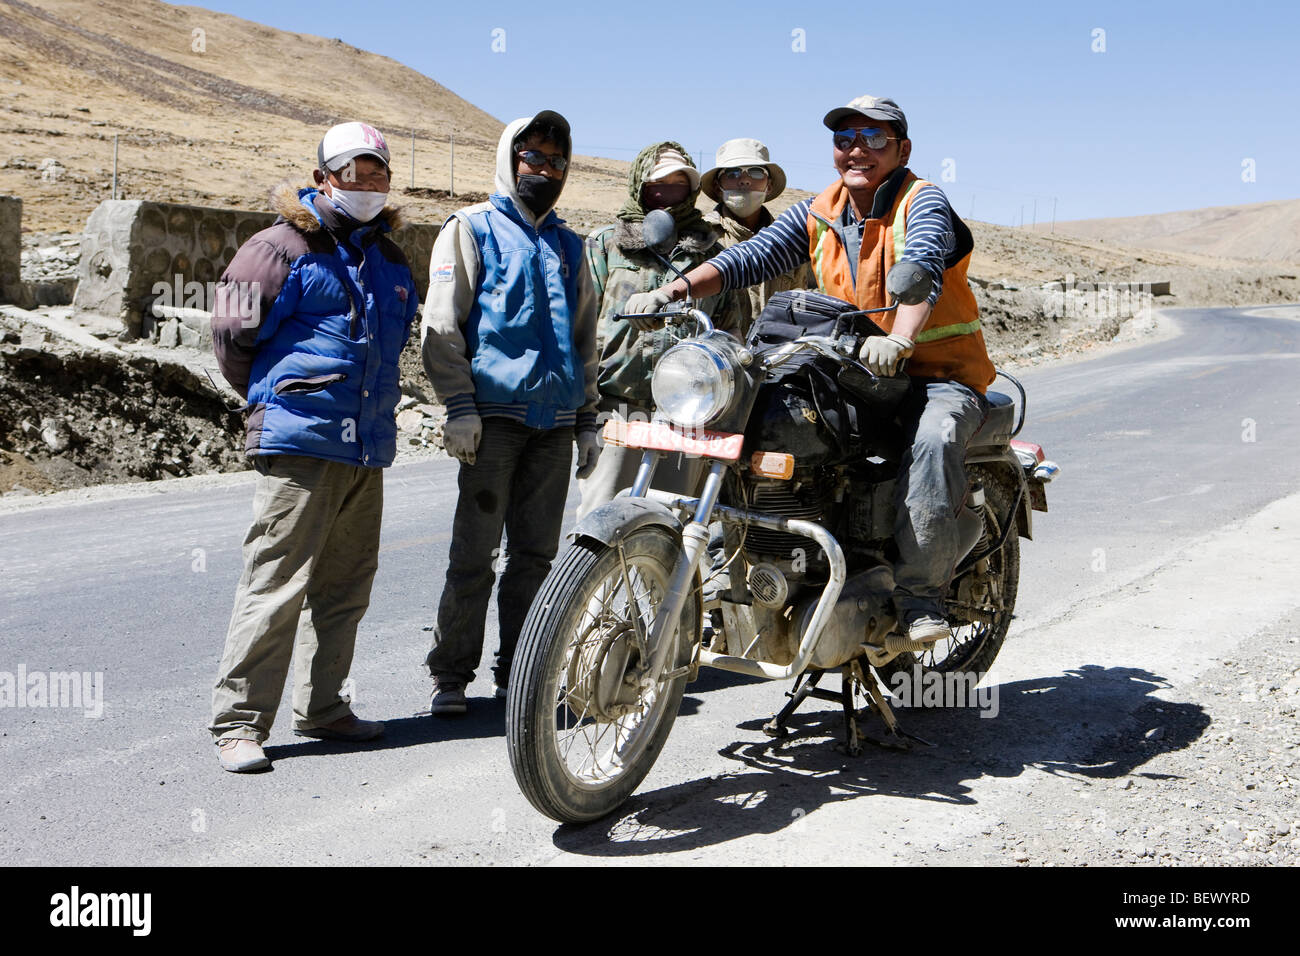 A few Tibet people with a motorbike in shot/ - Stock Image